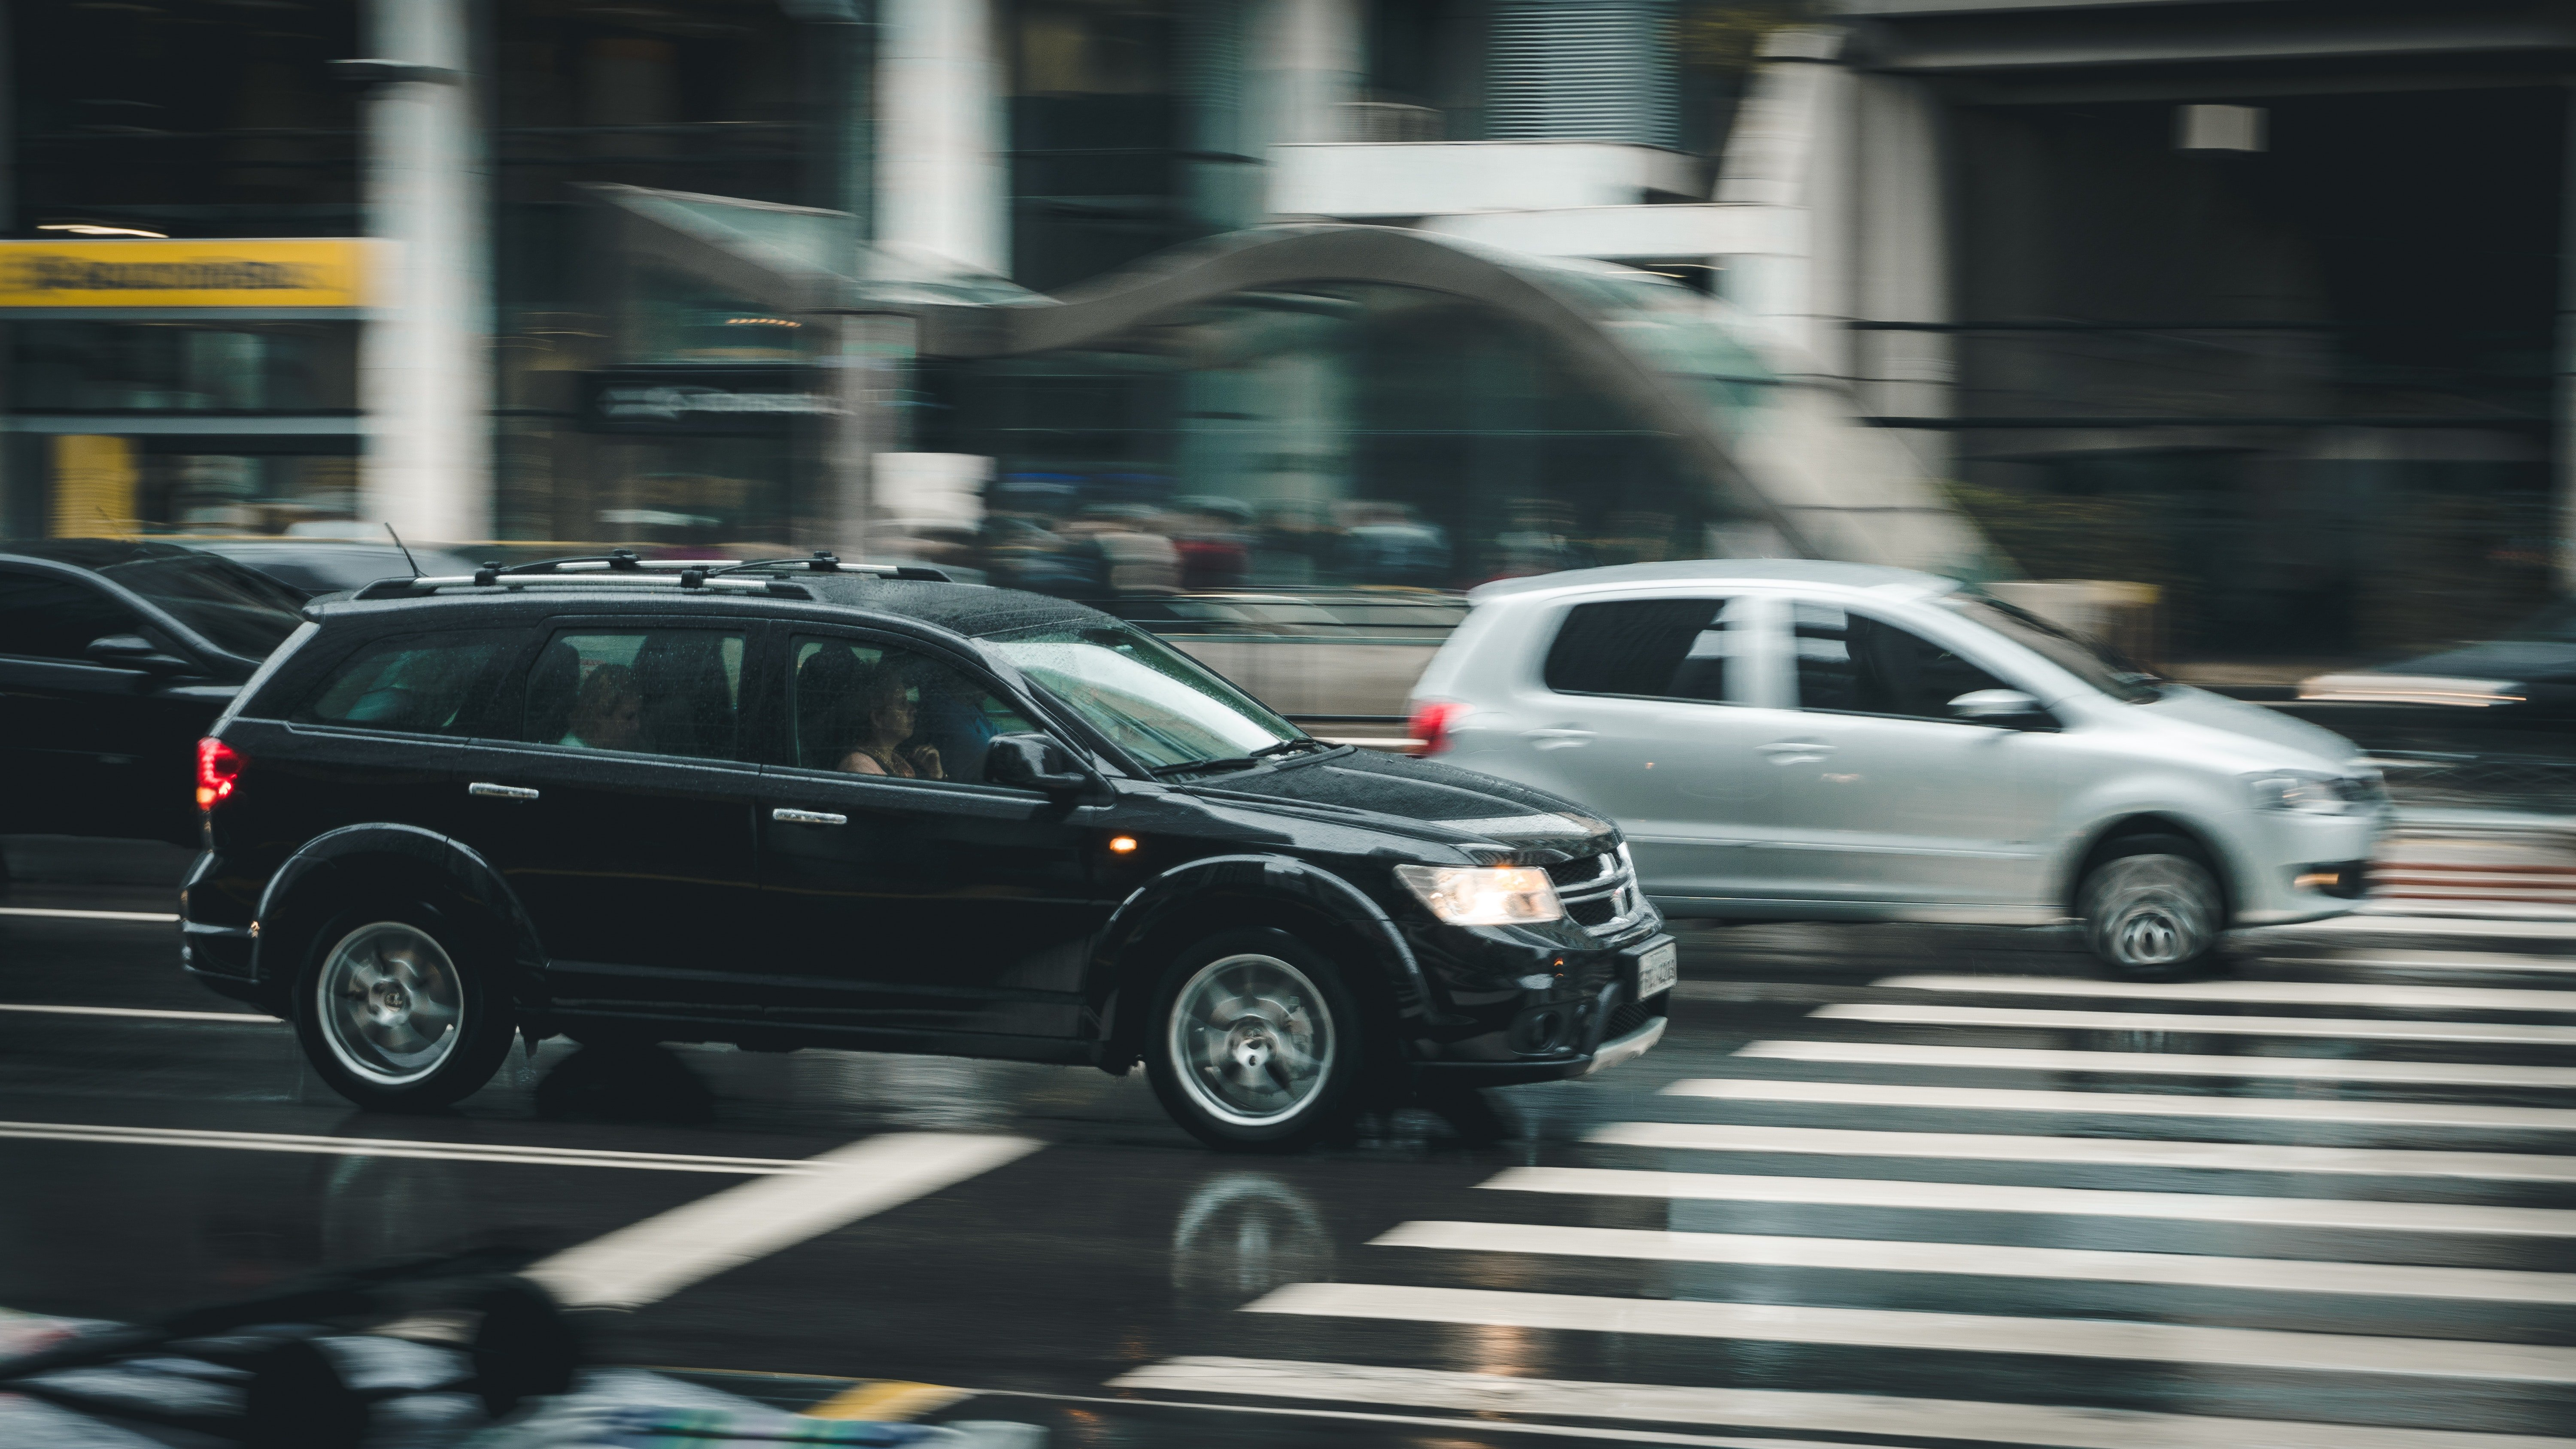 Two cars driving over a zebra stripe.   Source: Pexels/Kaique Rocha